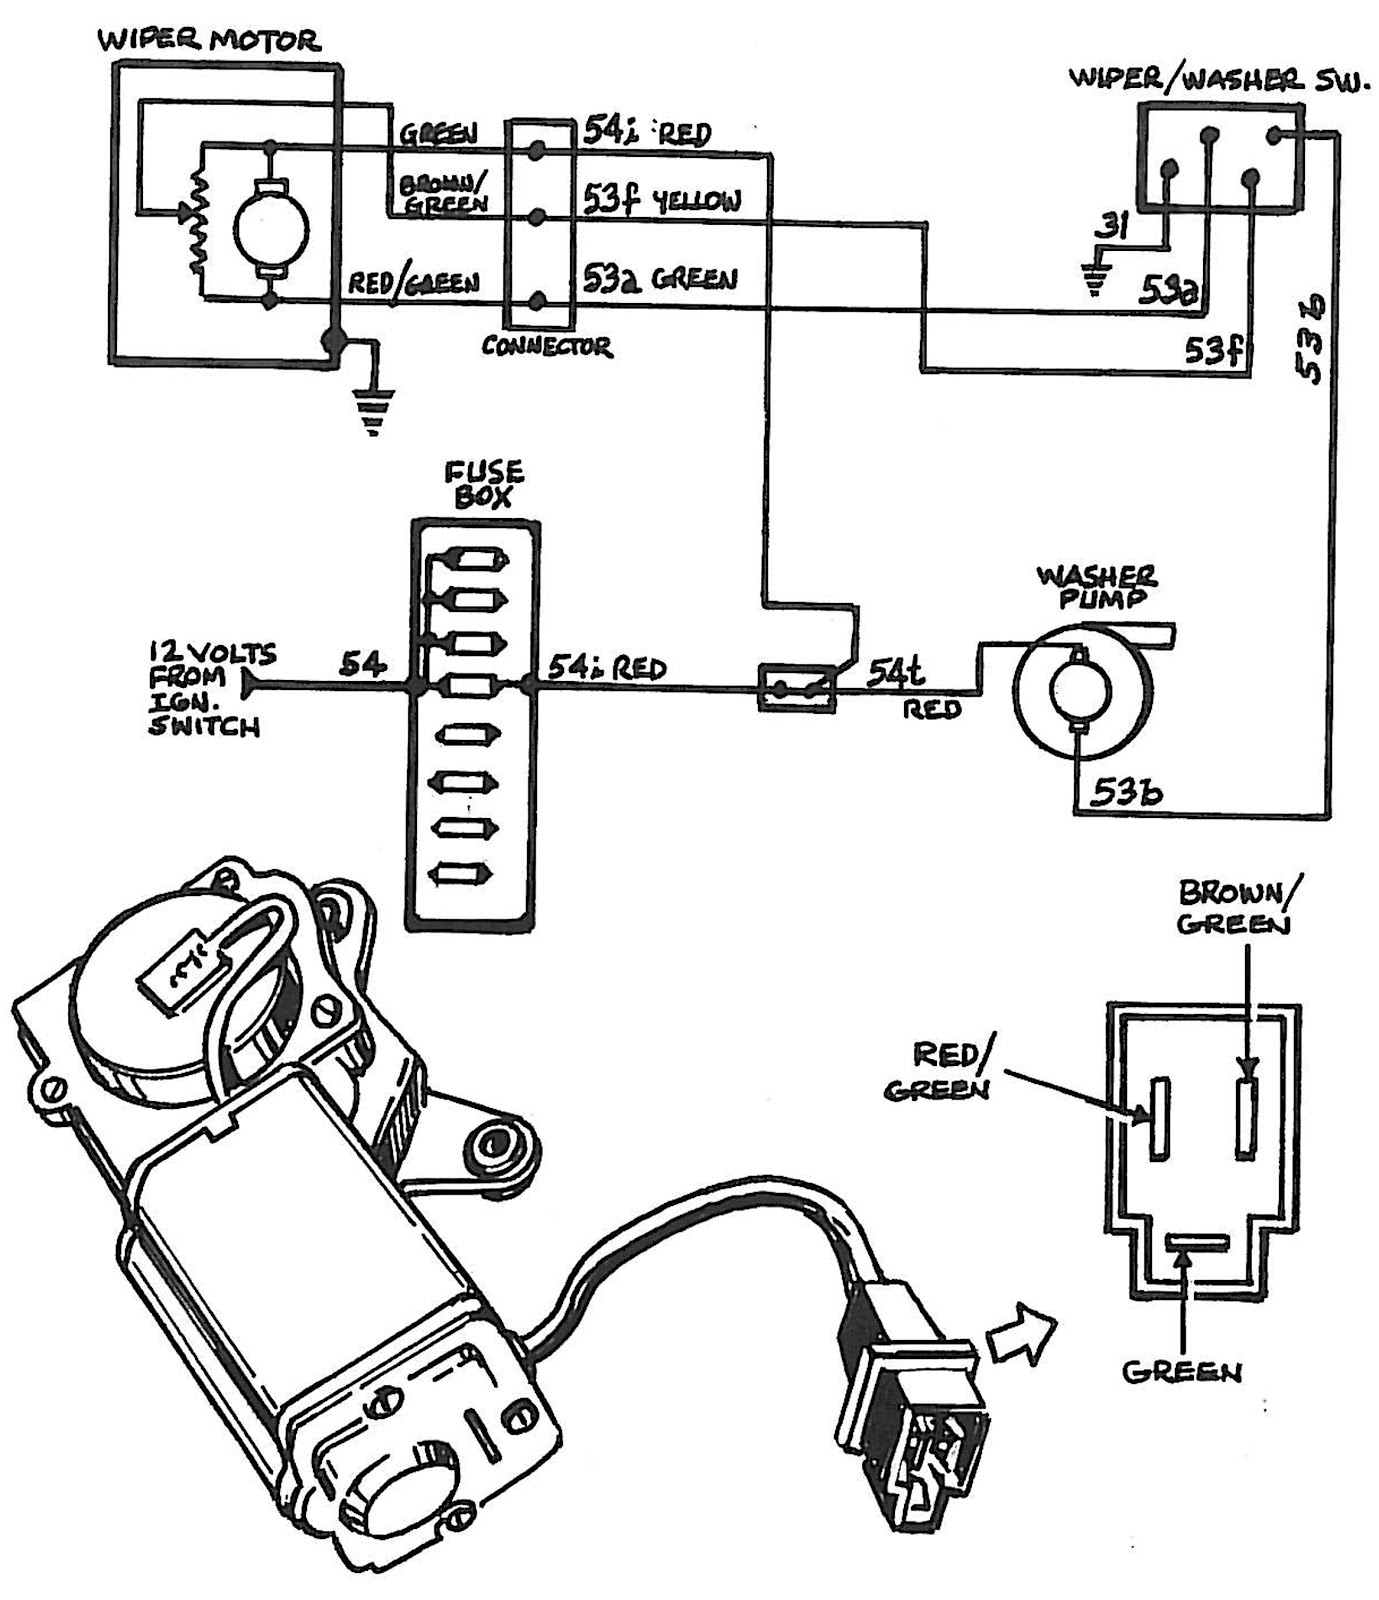 Chevrolet Wiper Wiring Diagram on 2002 Chevy Venture Starter Relay Location